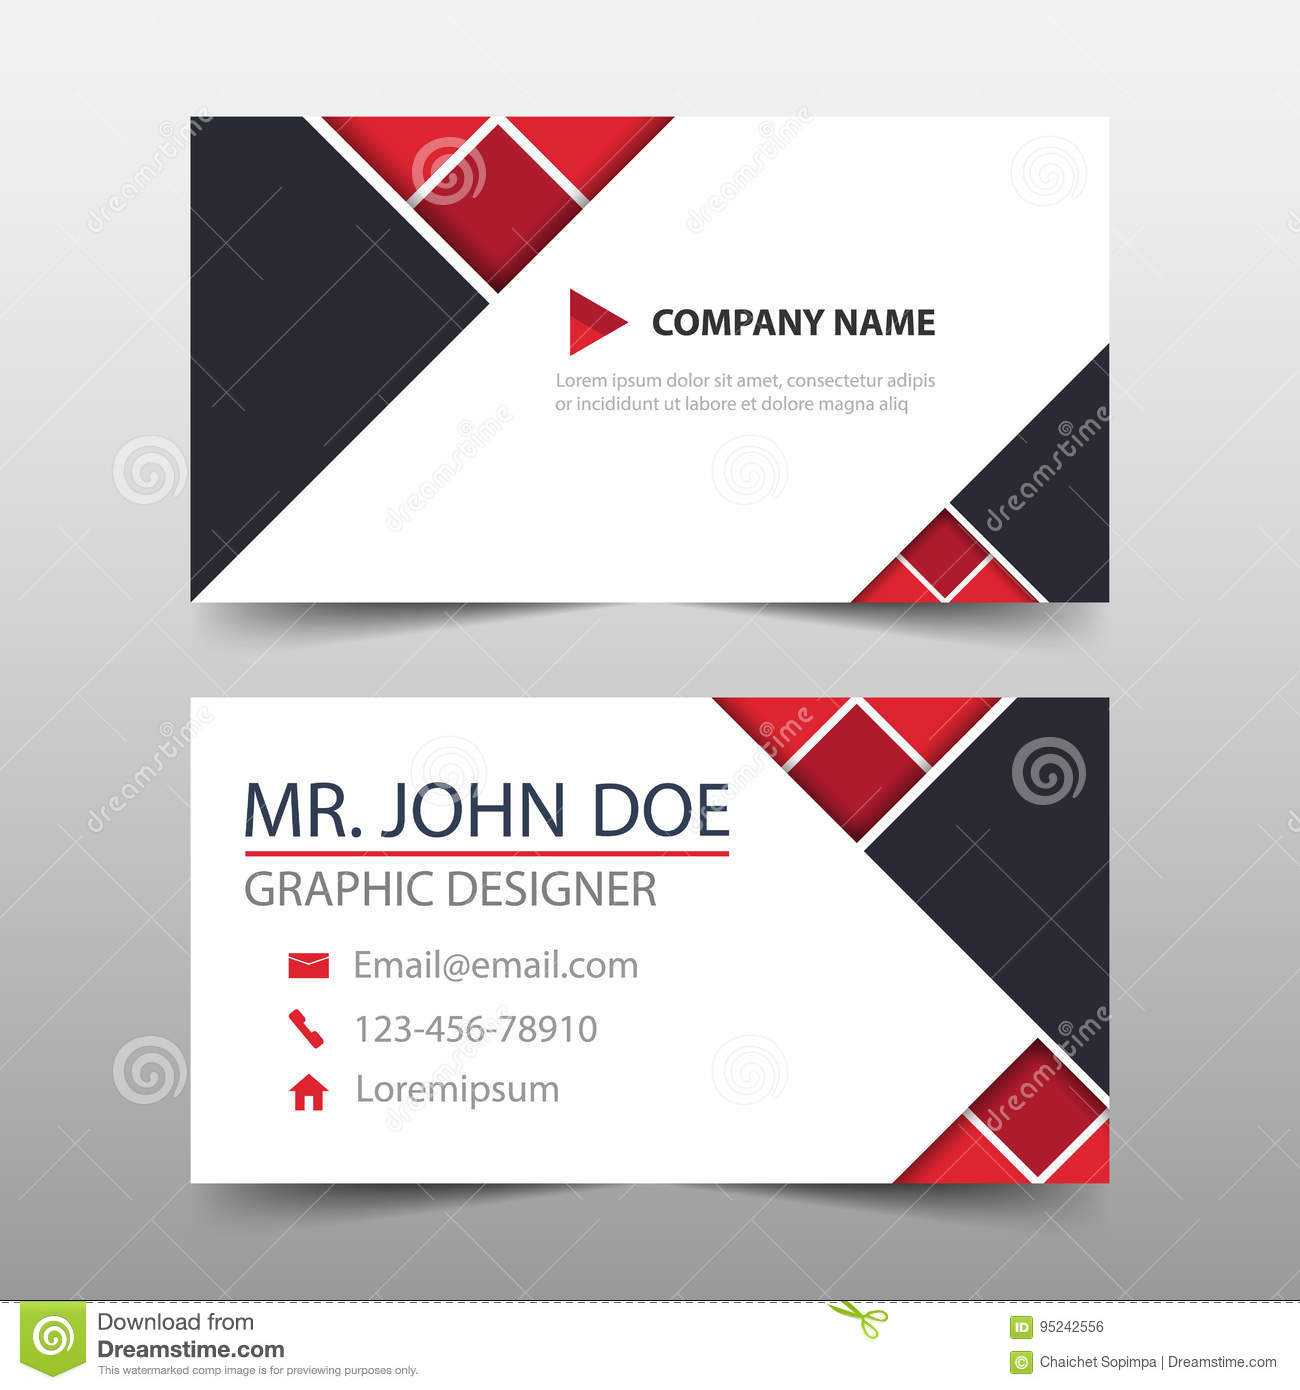 Red Triangle Corporate Business Card, Name Card Template Inside Buisness Card Template